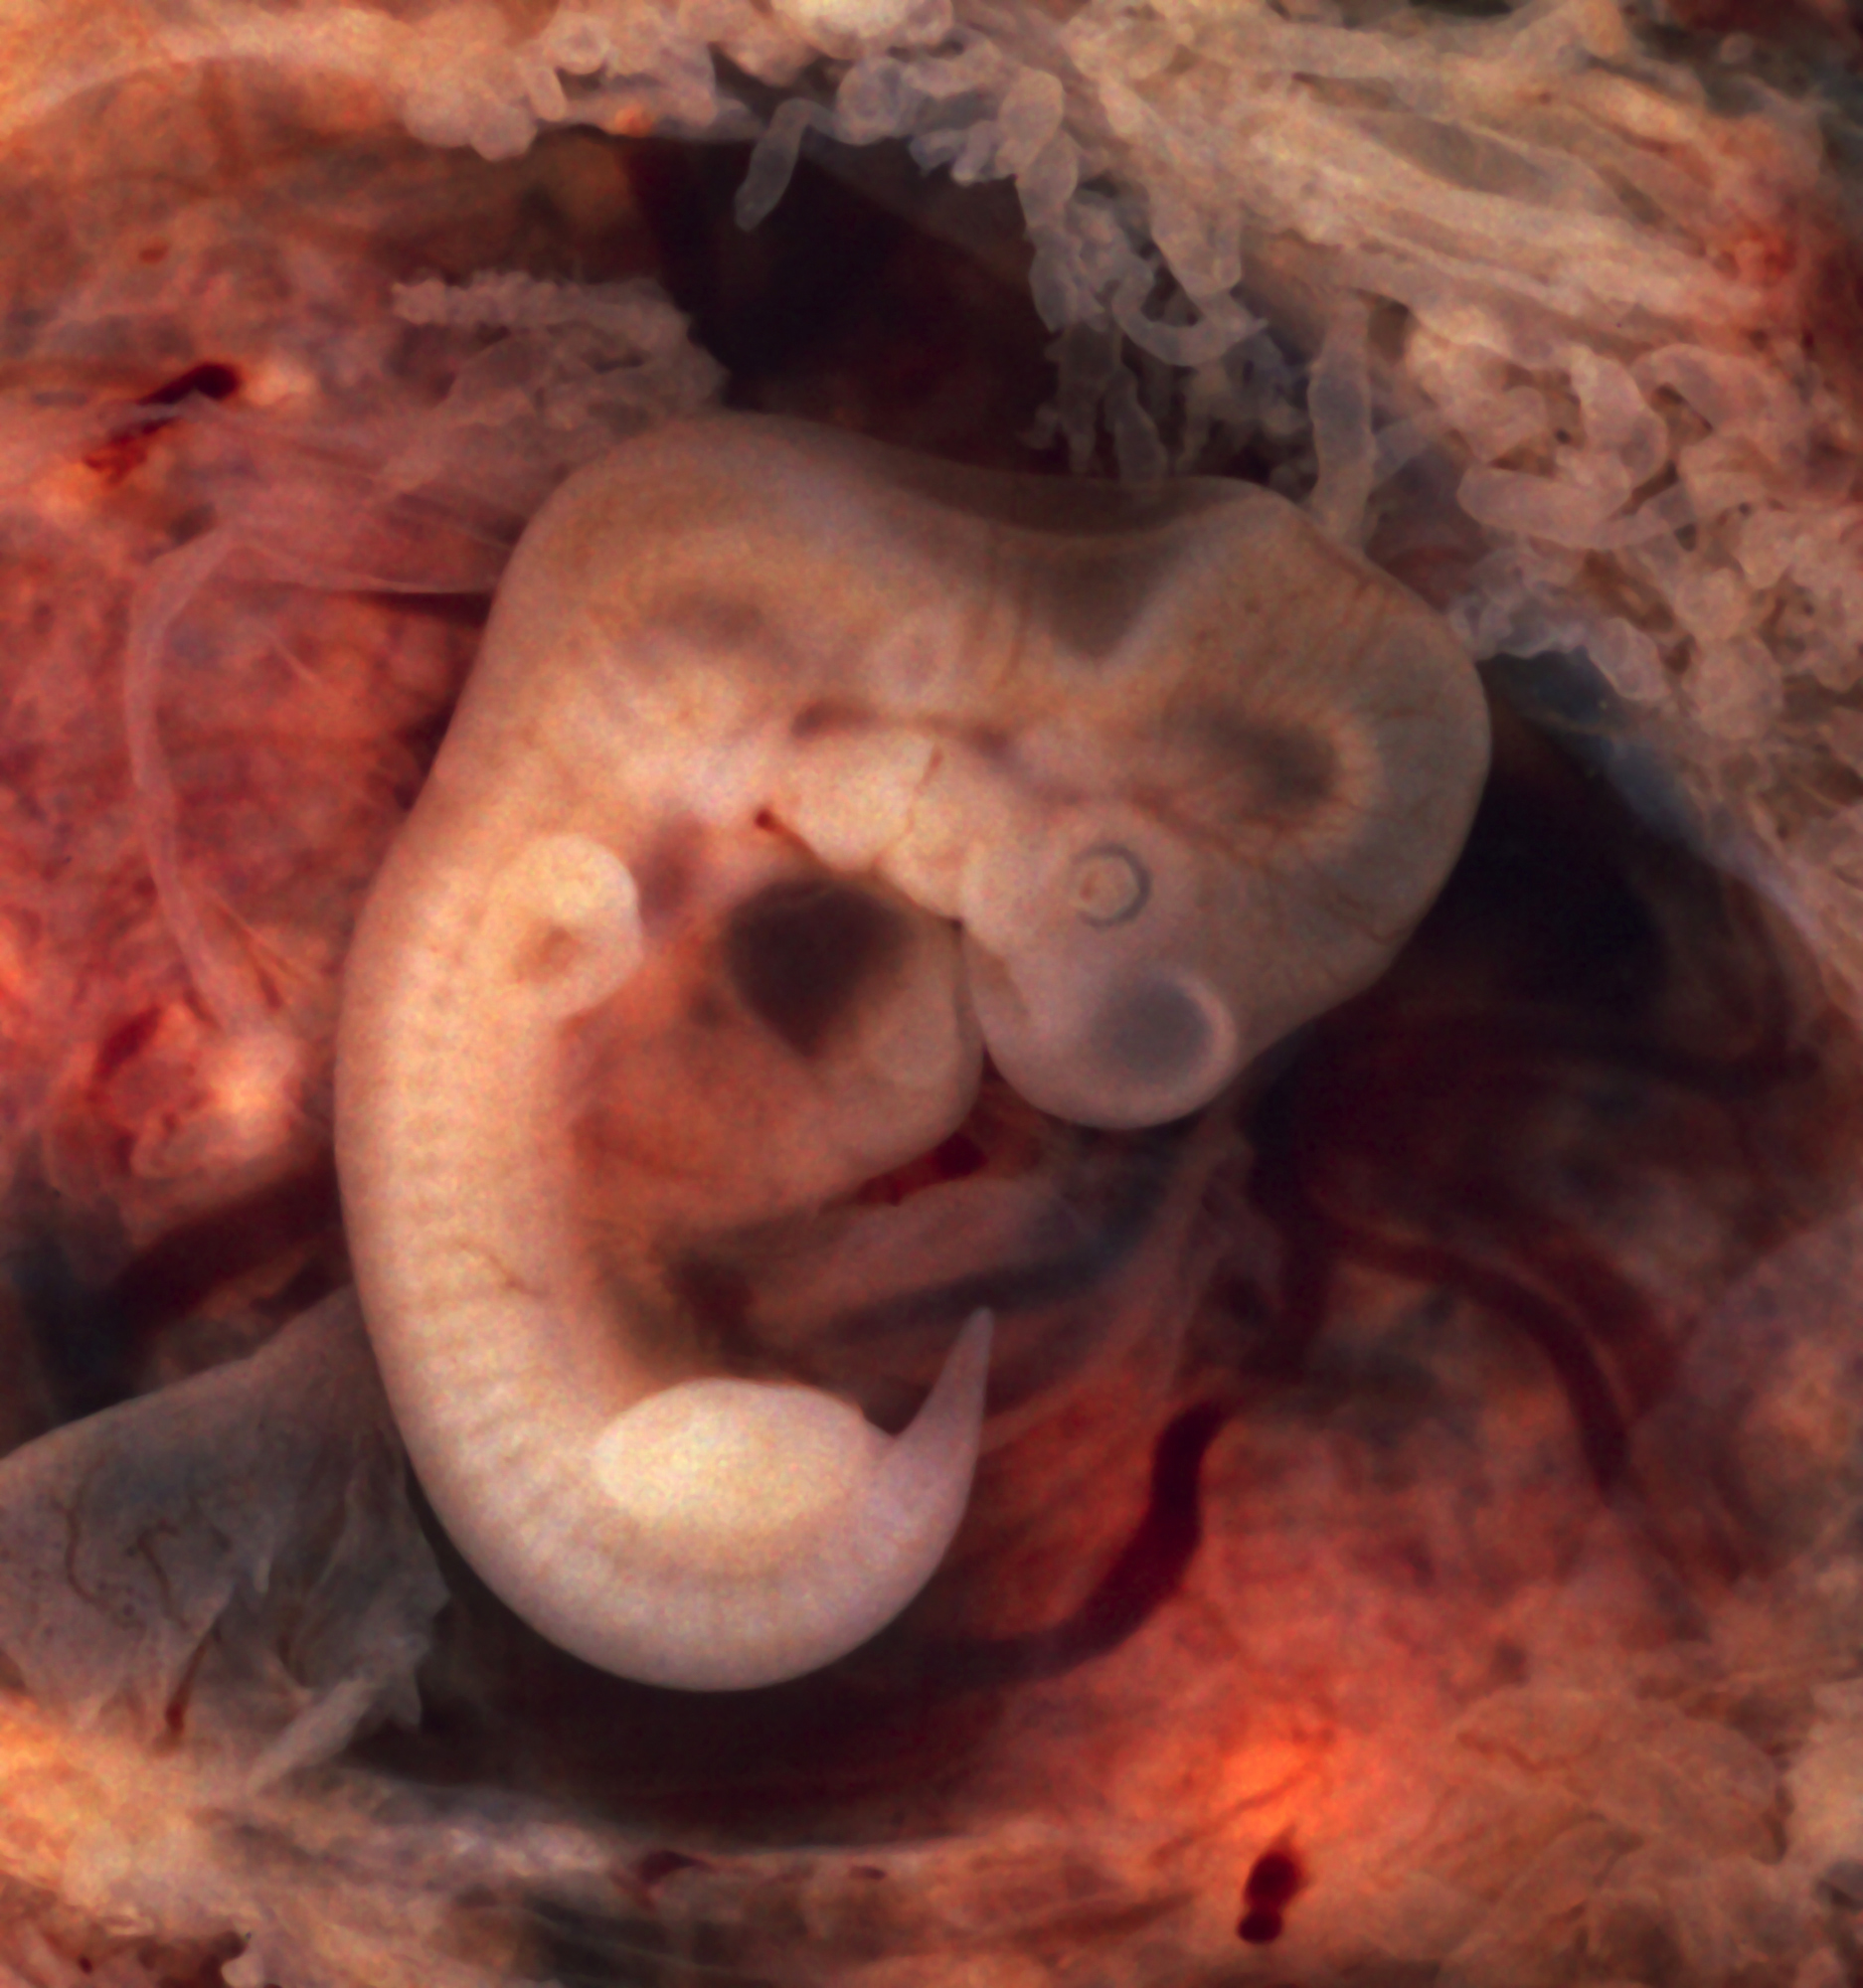 https://upload.wikimedia.org/wikipedia/commons/2/21/Tubal_Pregnancy_with_embryo.jpg